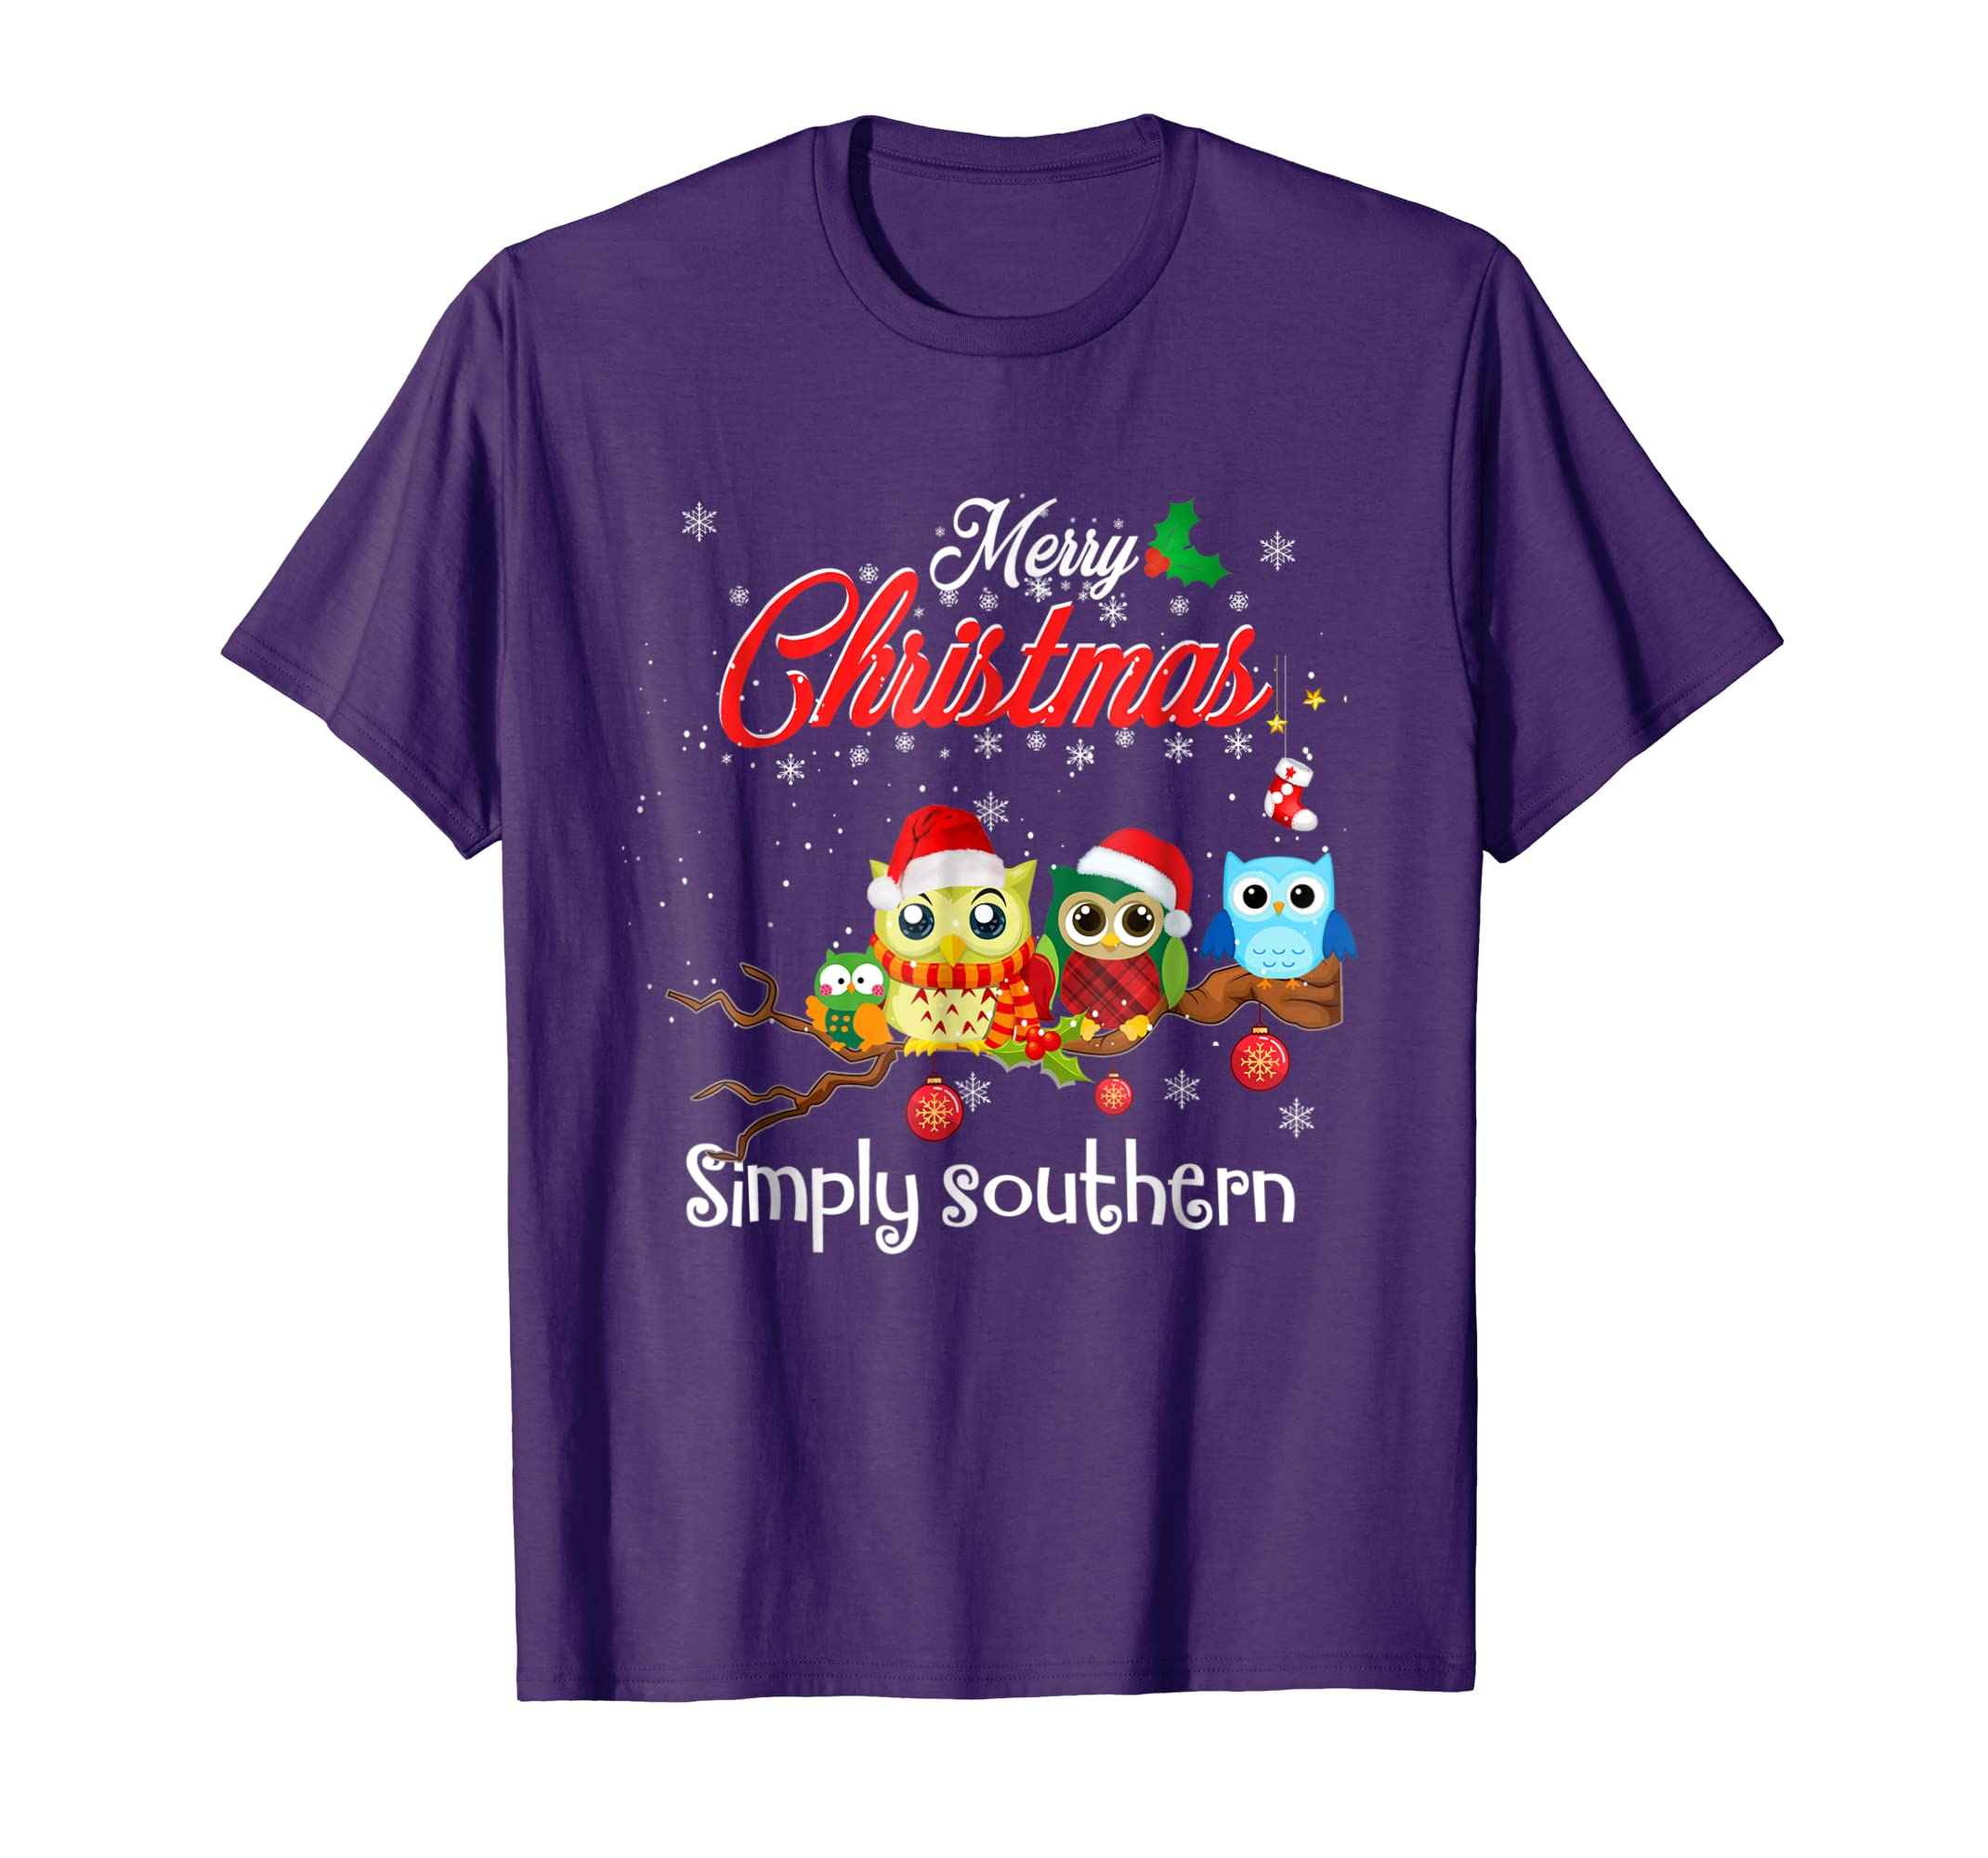 Merry Christmas Gift : Cute Simply southern Owl t shirt-azvn